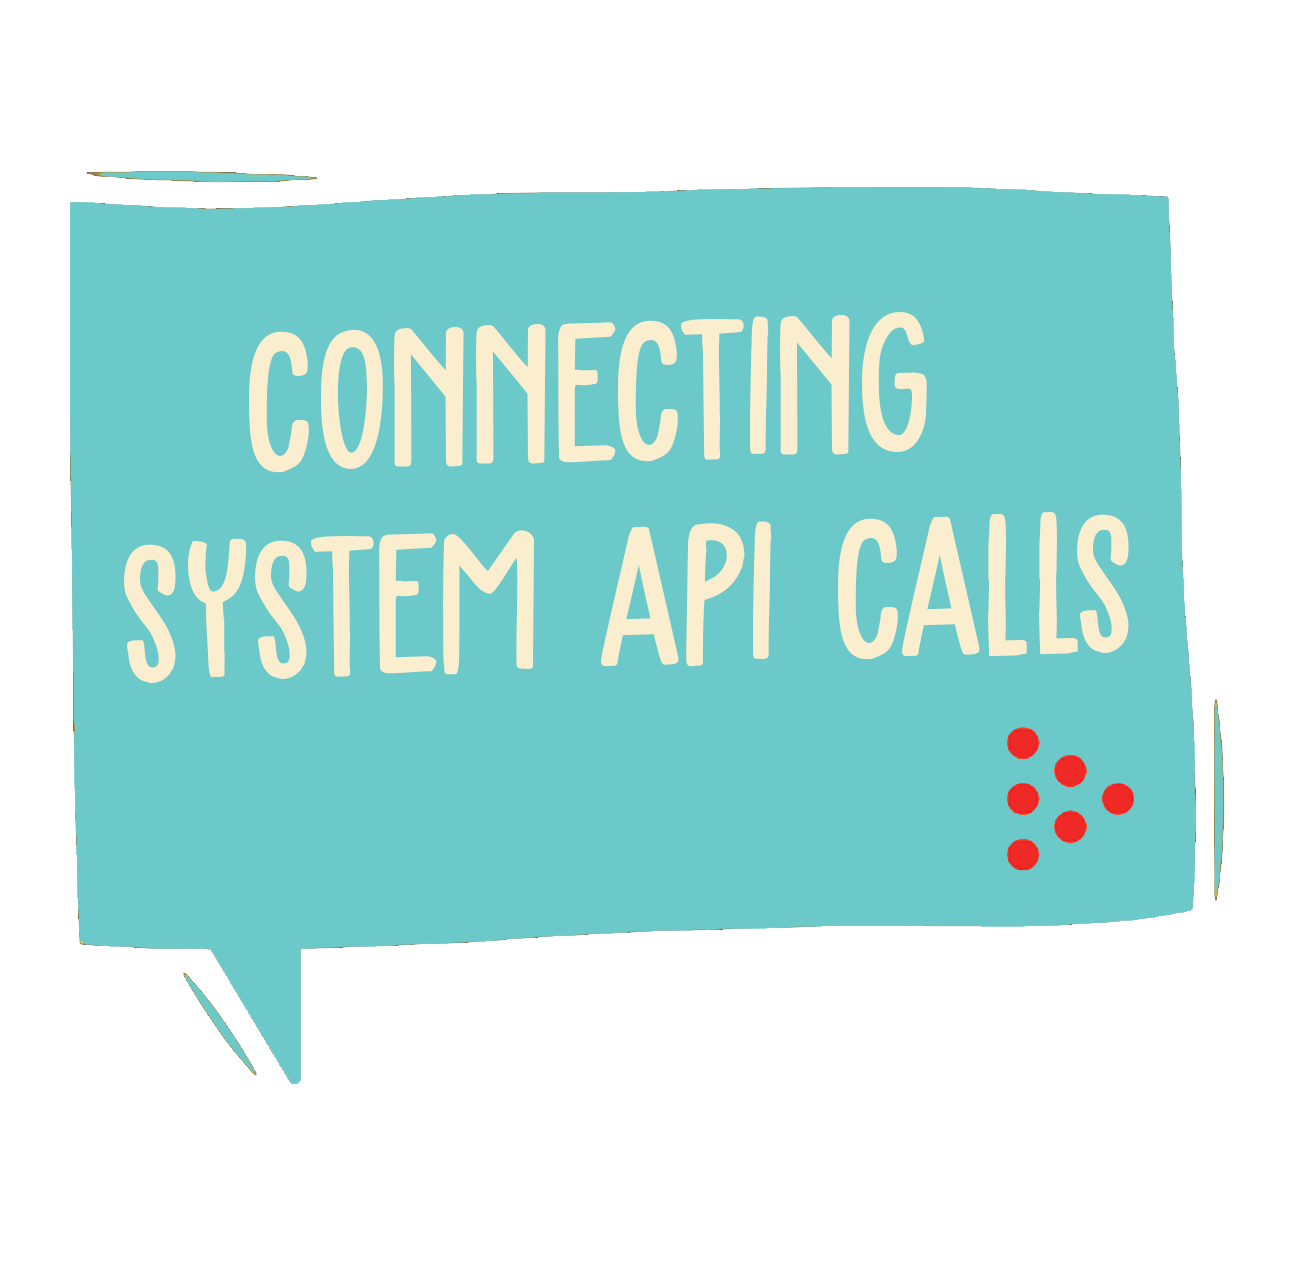 Connecting System api calls